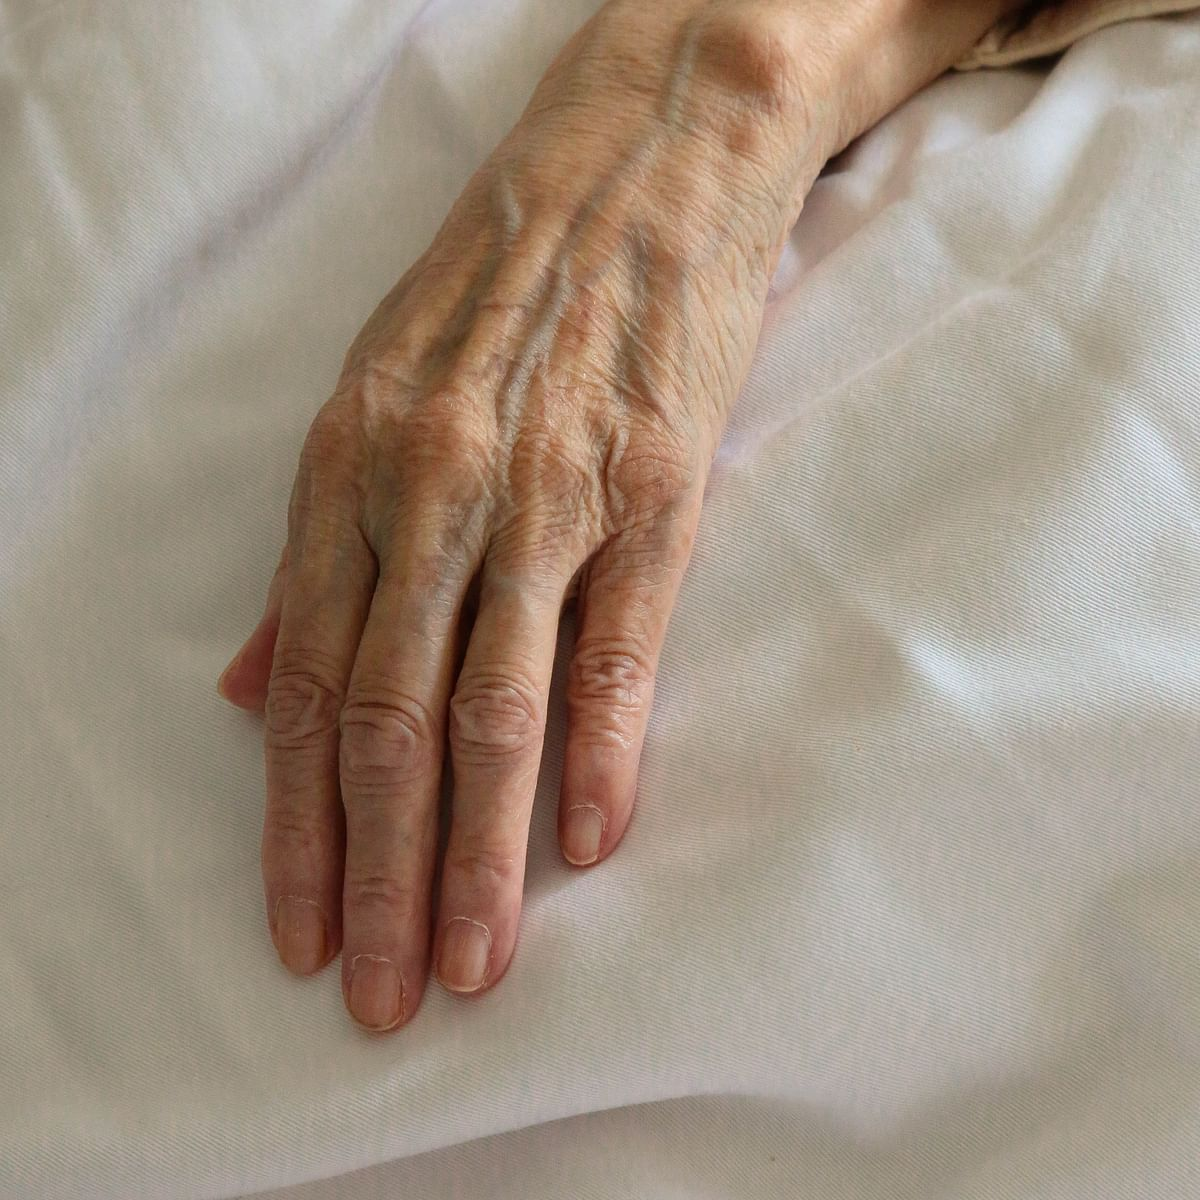 Senior Citizens: It's Time to Rise Against Elder Abuse